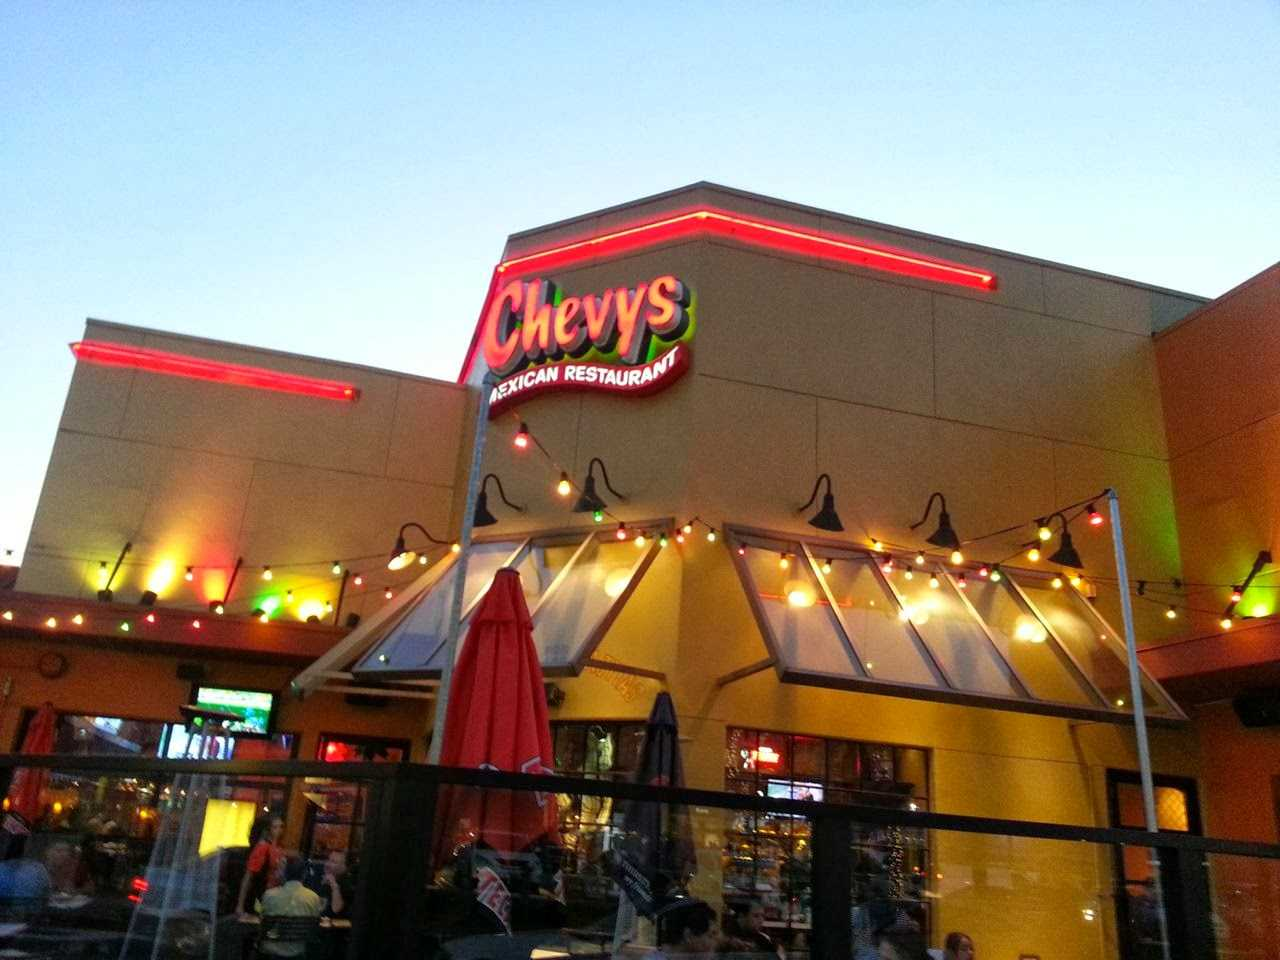 chevys near me, chevy's locations